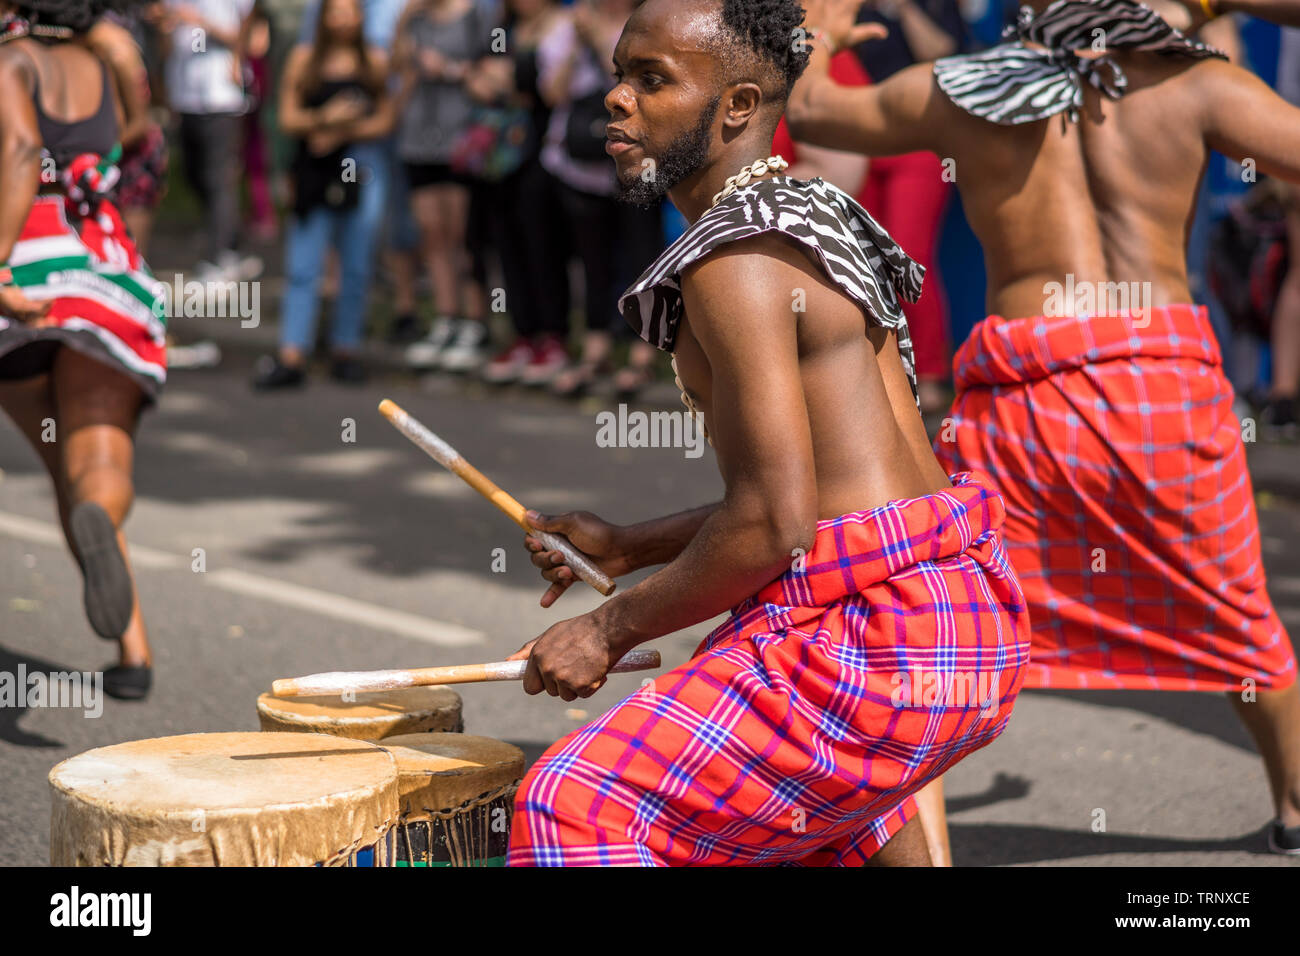 The street parade is the highlight of Carnival of Cultures during Pentecost weekend in Berlin. - Stock Image